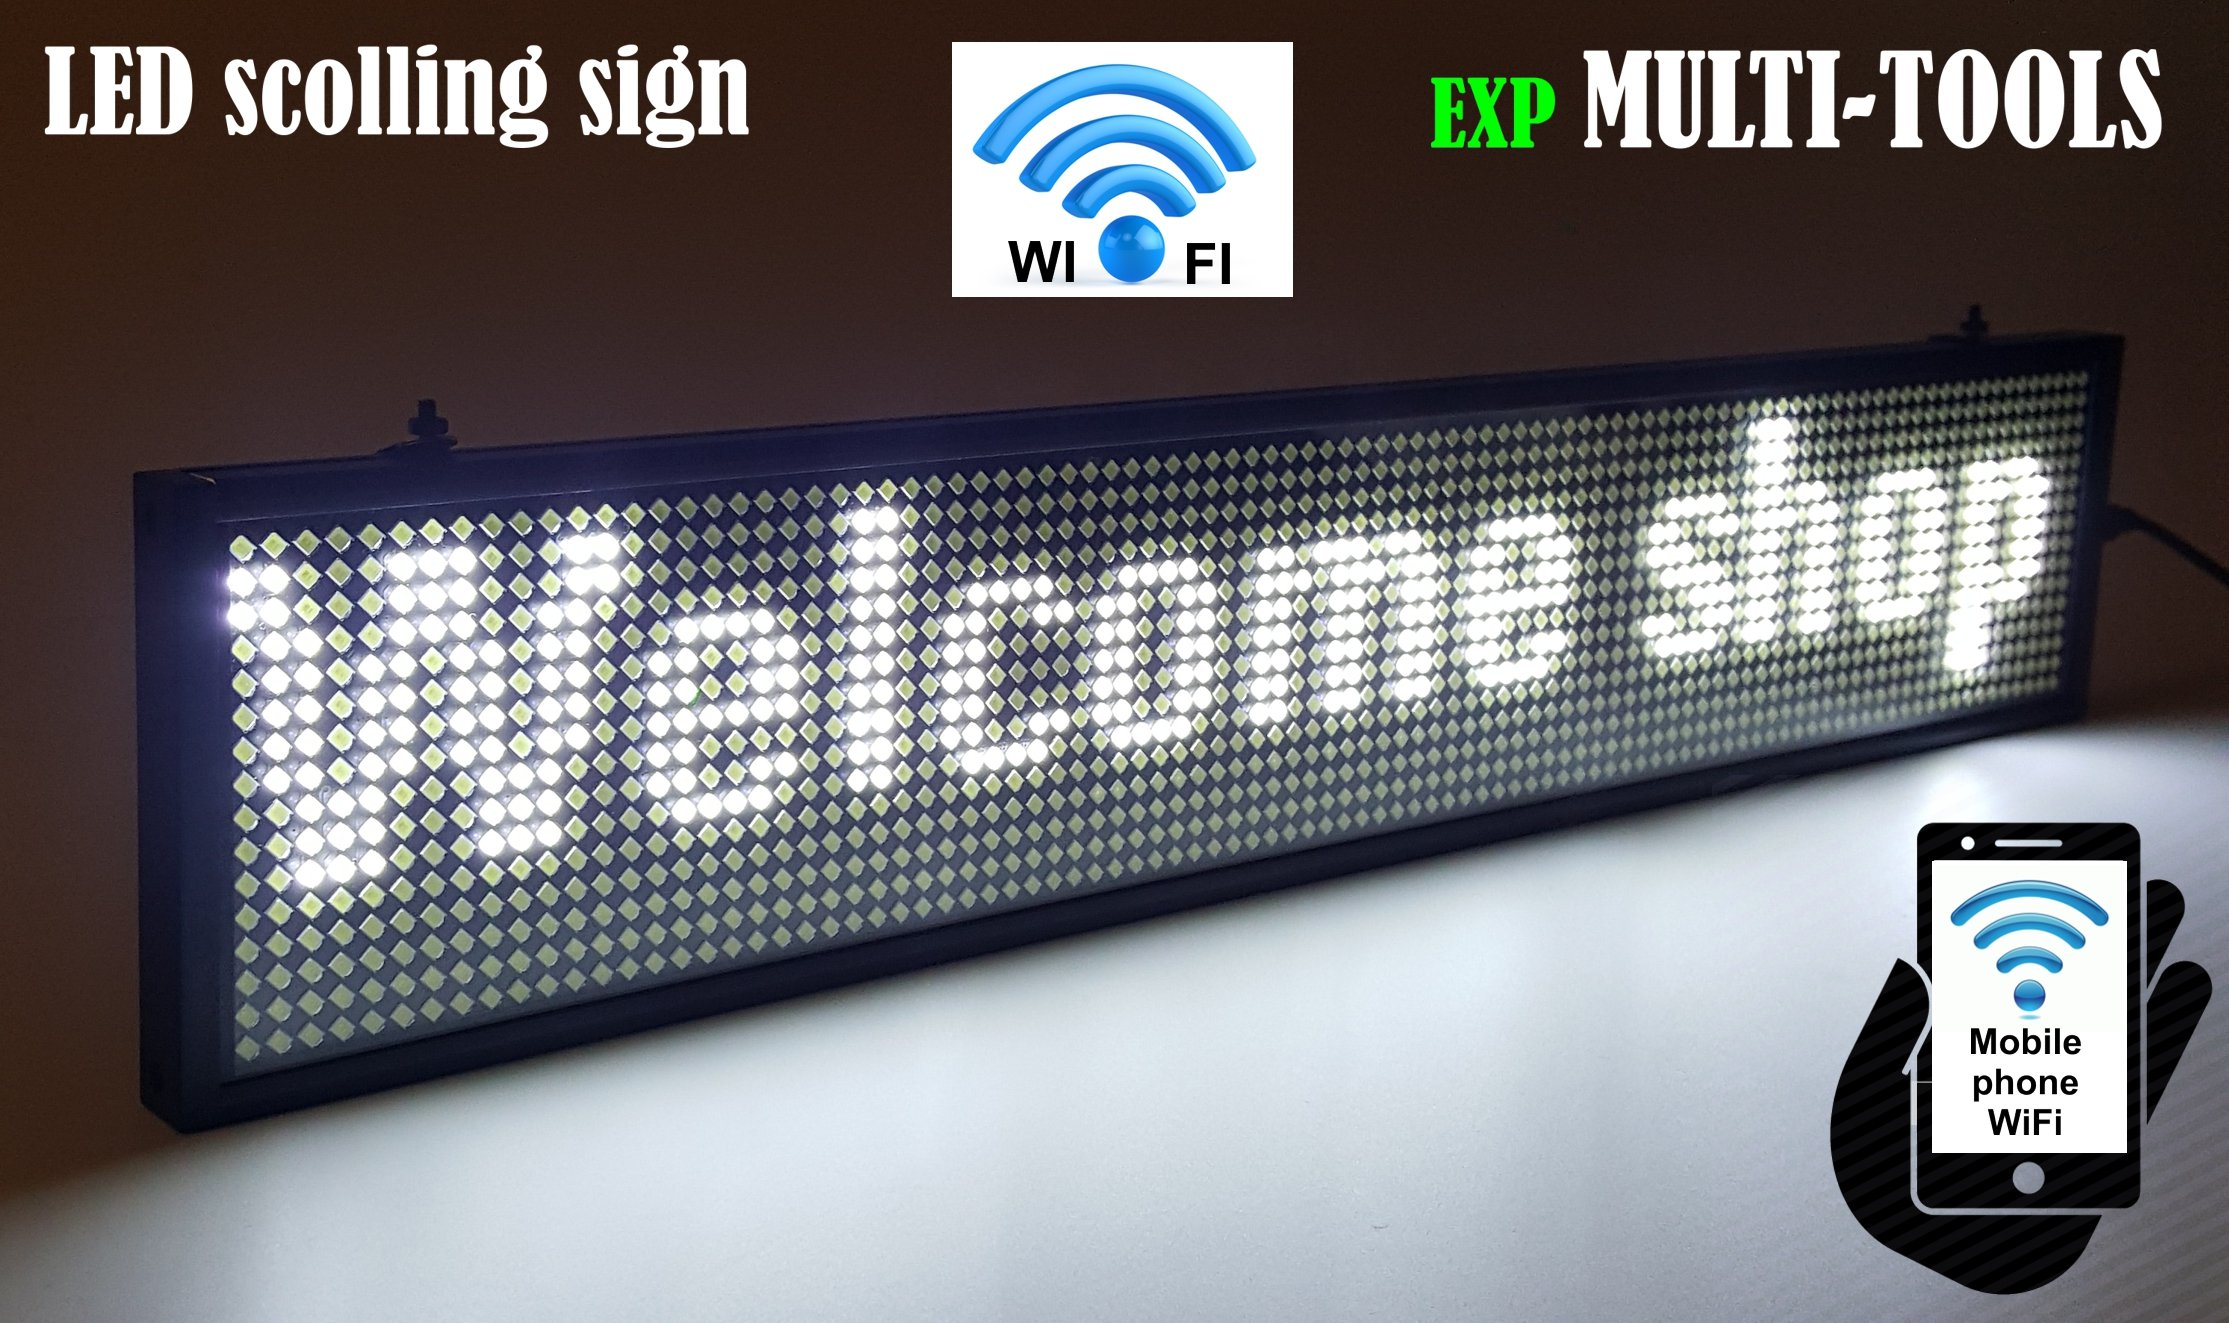 LED Display White Color with WiFi Connection, LED